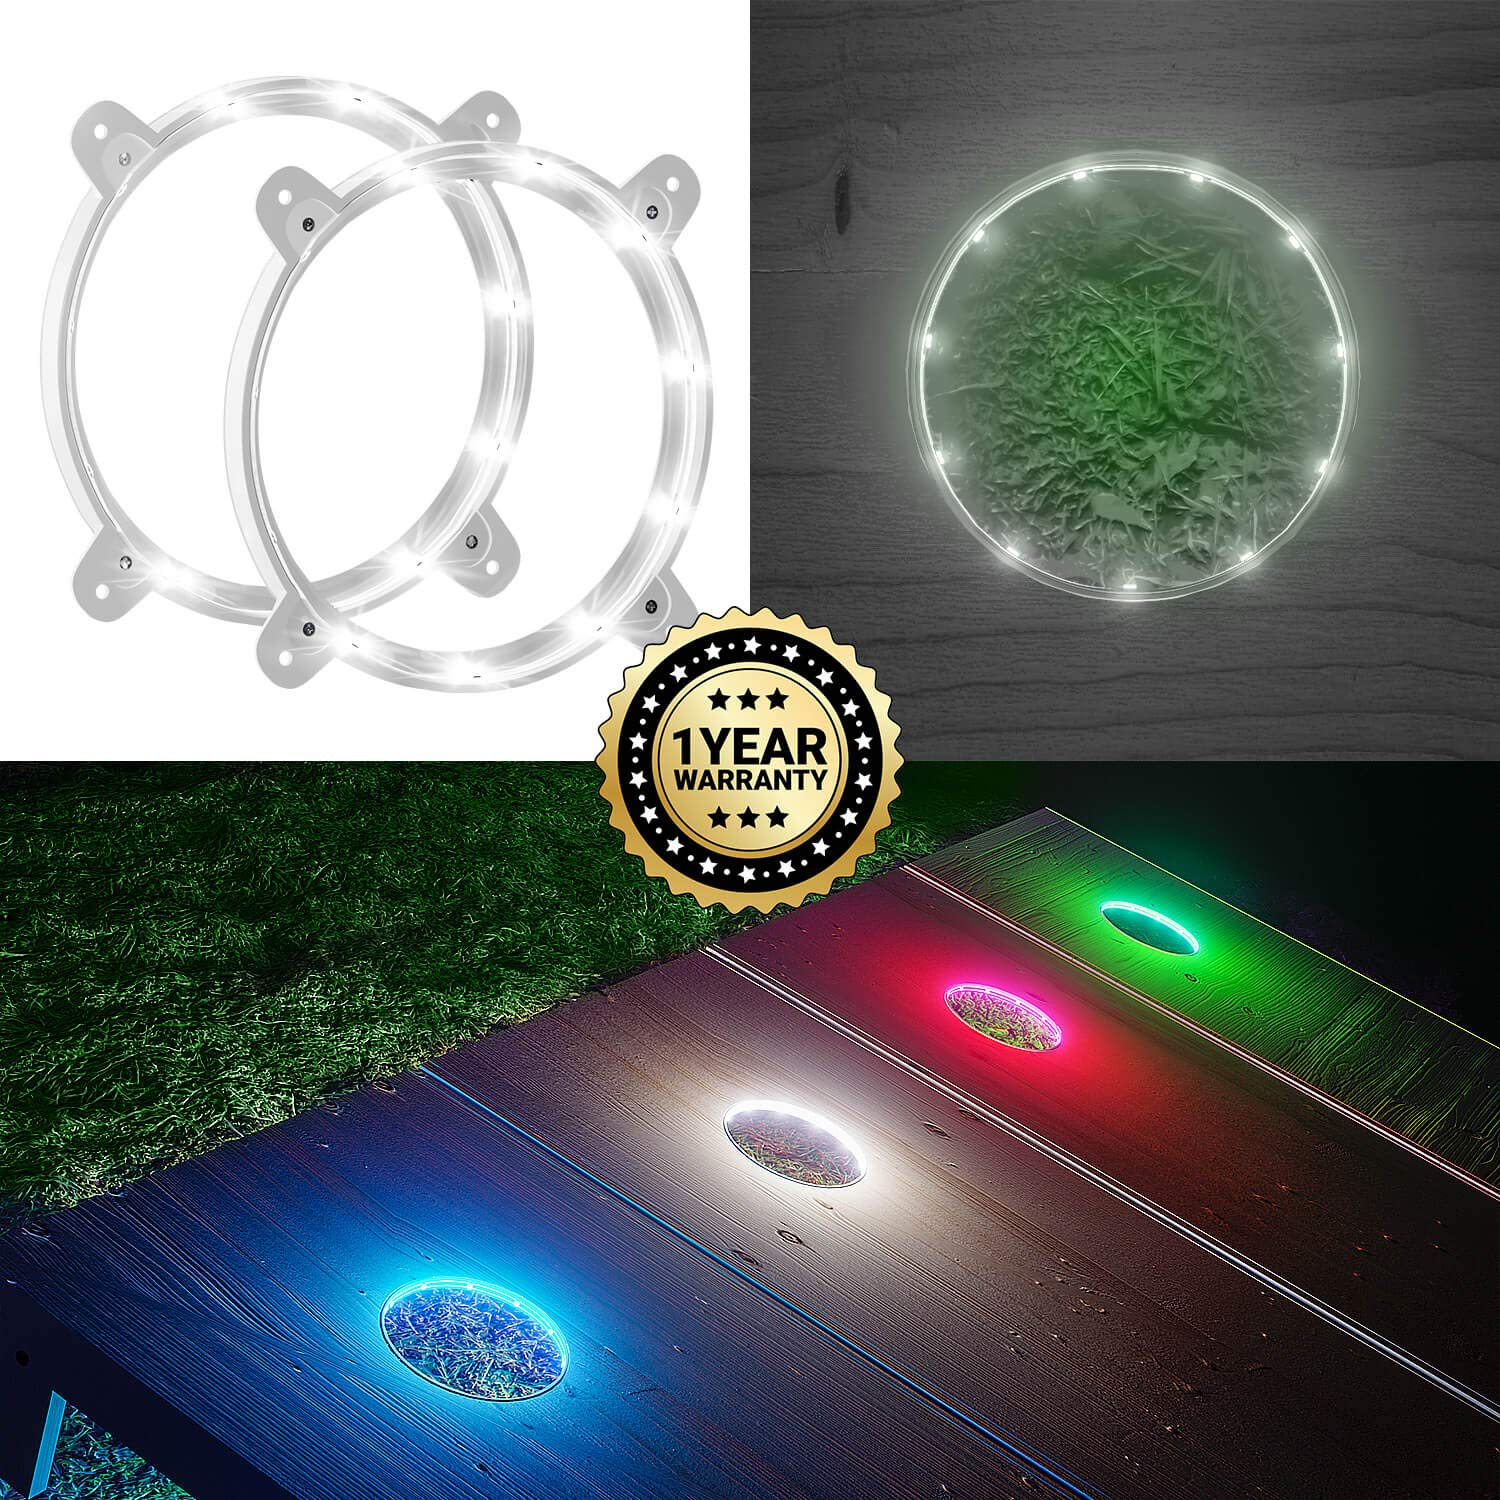 Cornhole LED Board Lights so You Can Play at Night! (set of 2) -Choose from White or Blue- Quality Construction, 1 Year Replacement Warranty! (White)